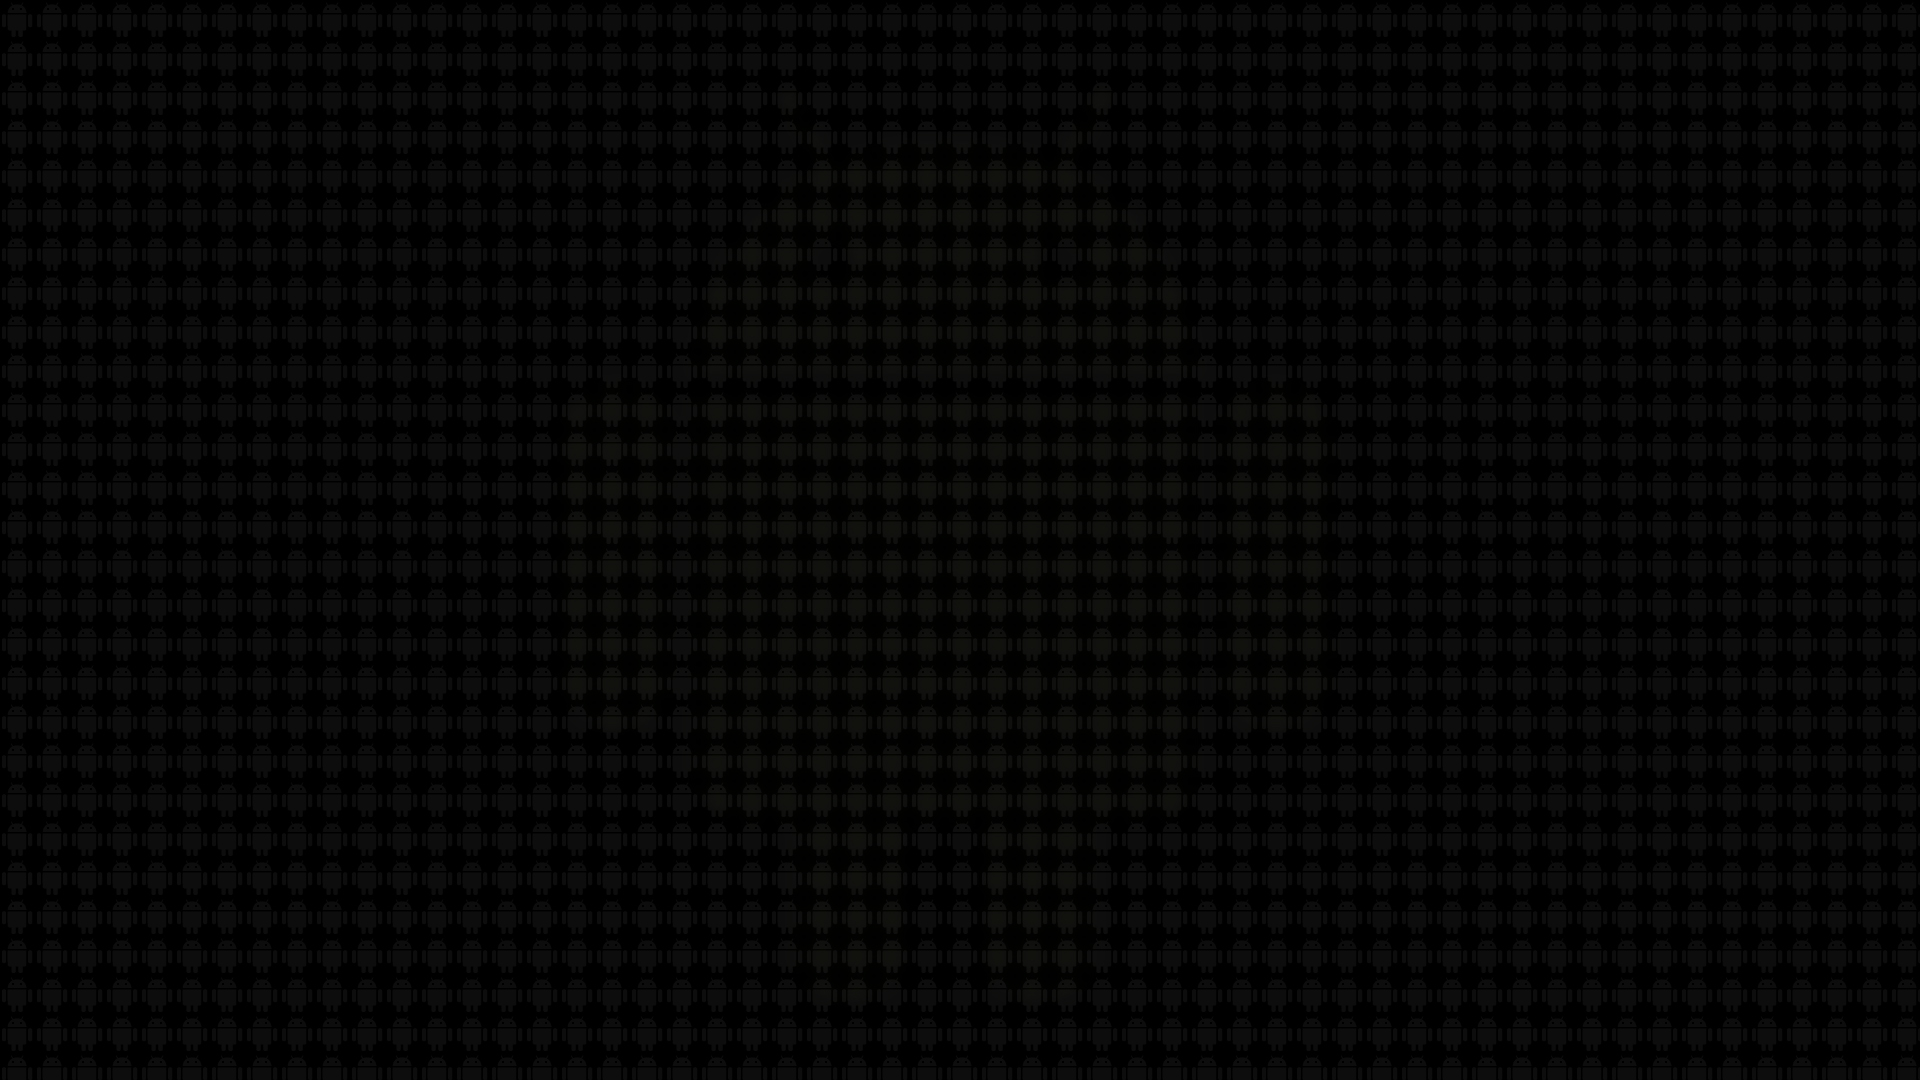 Black Grid Wallpaper 1920x1080 10009